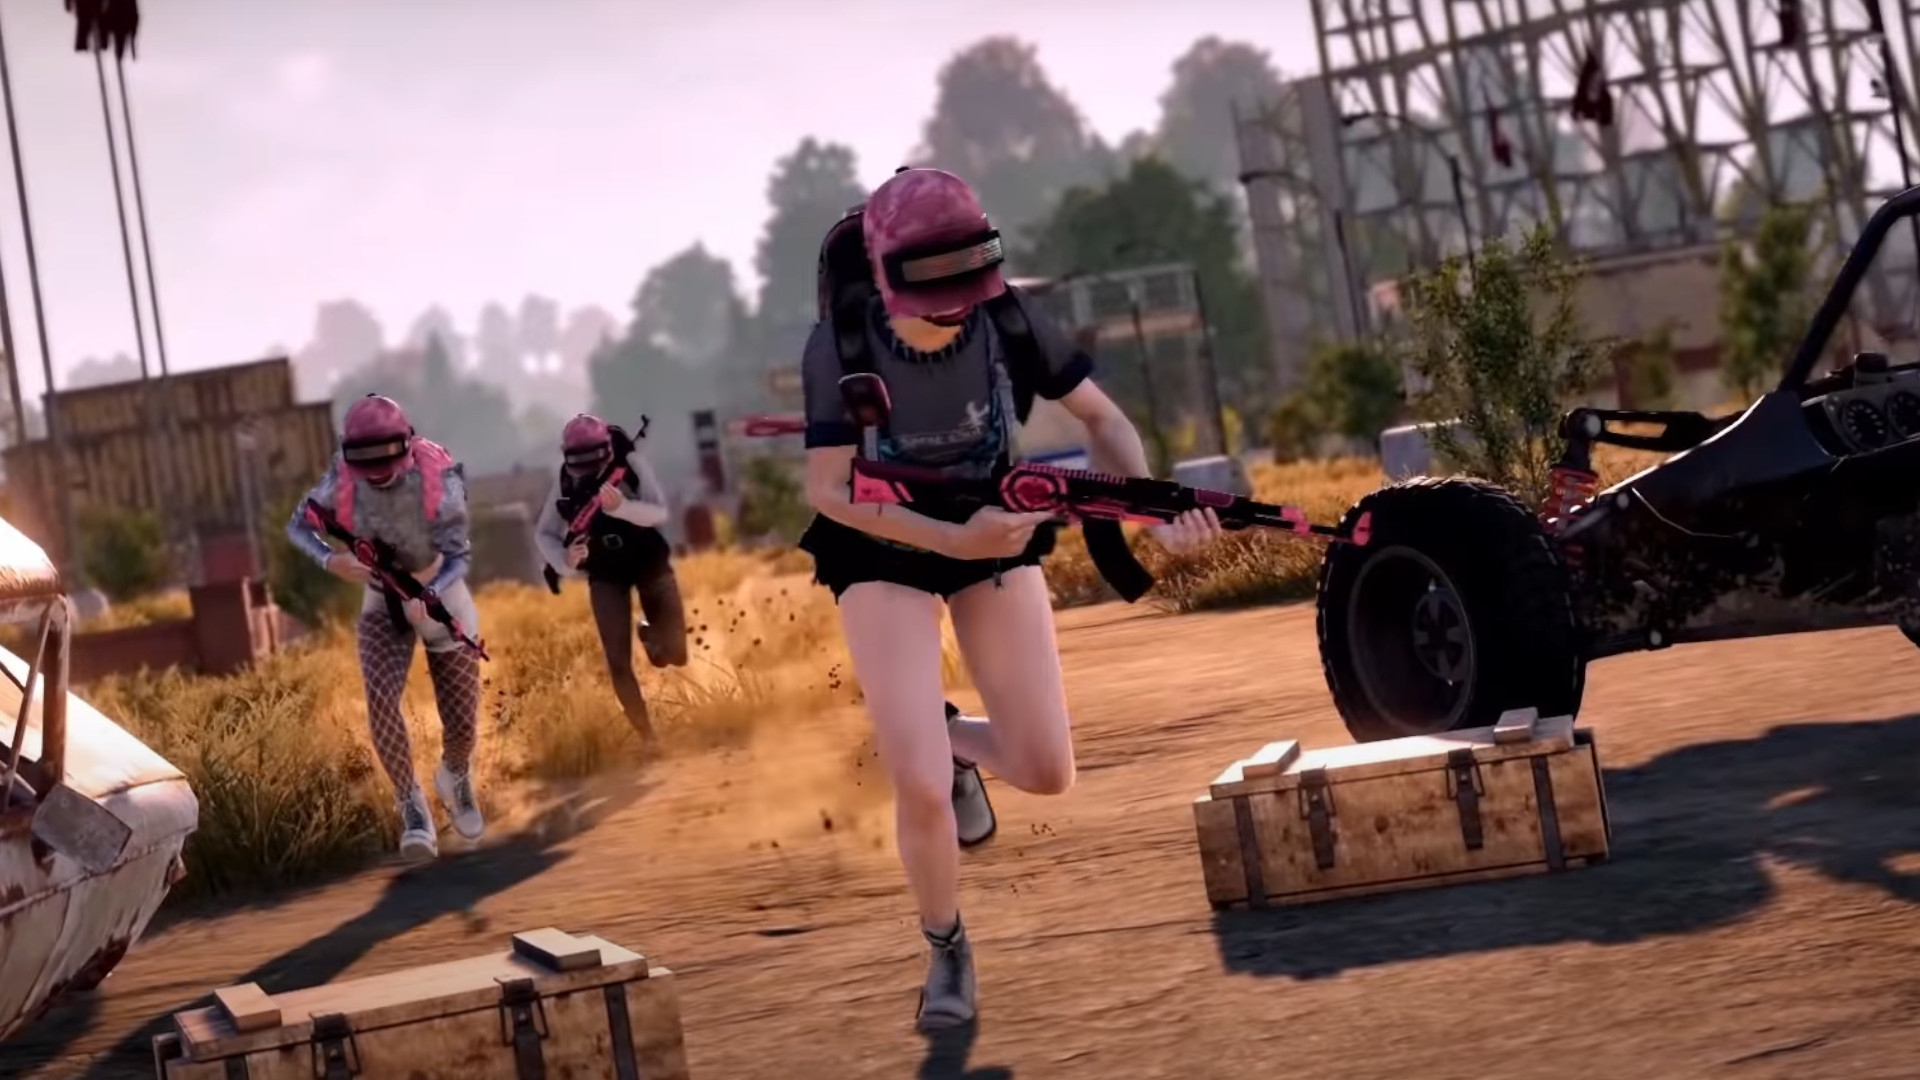 PUBG is going free-to-play, temporarily (for now)